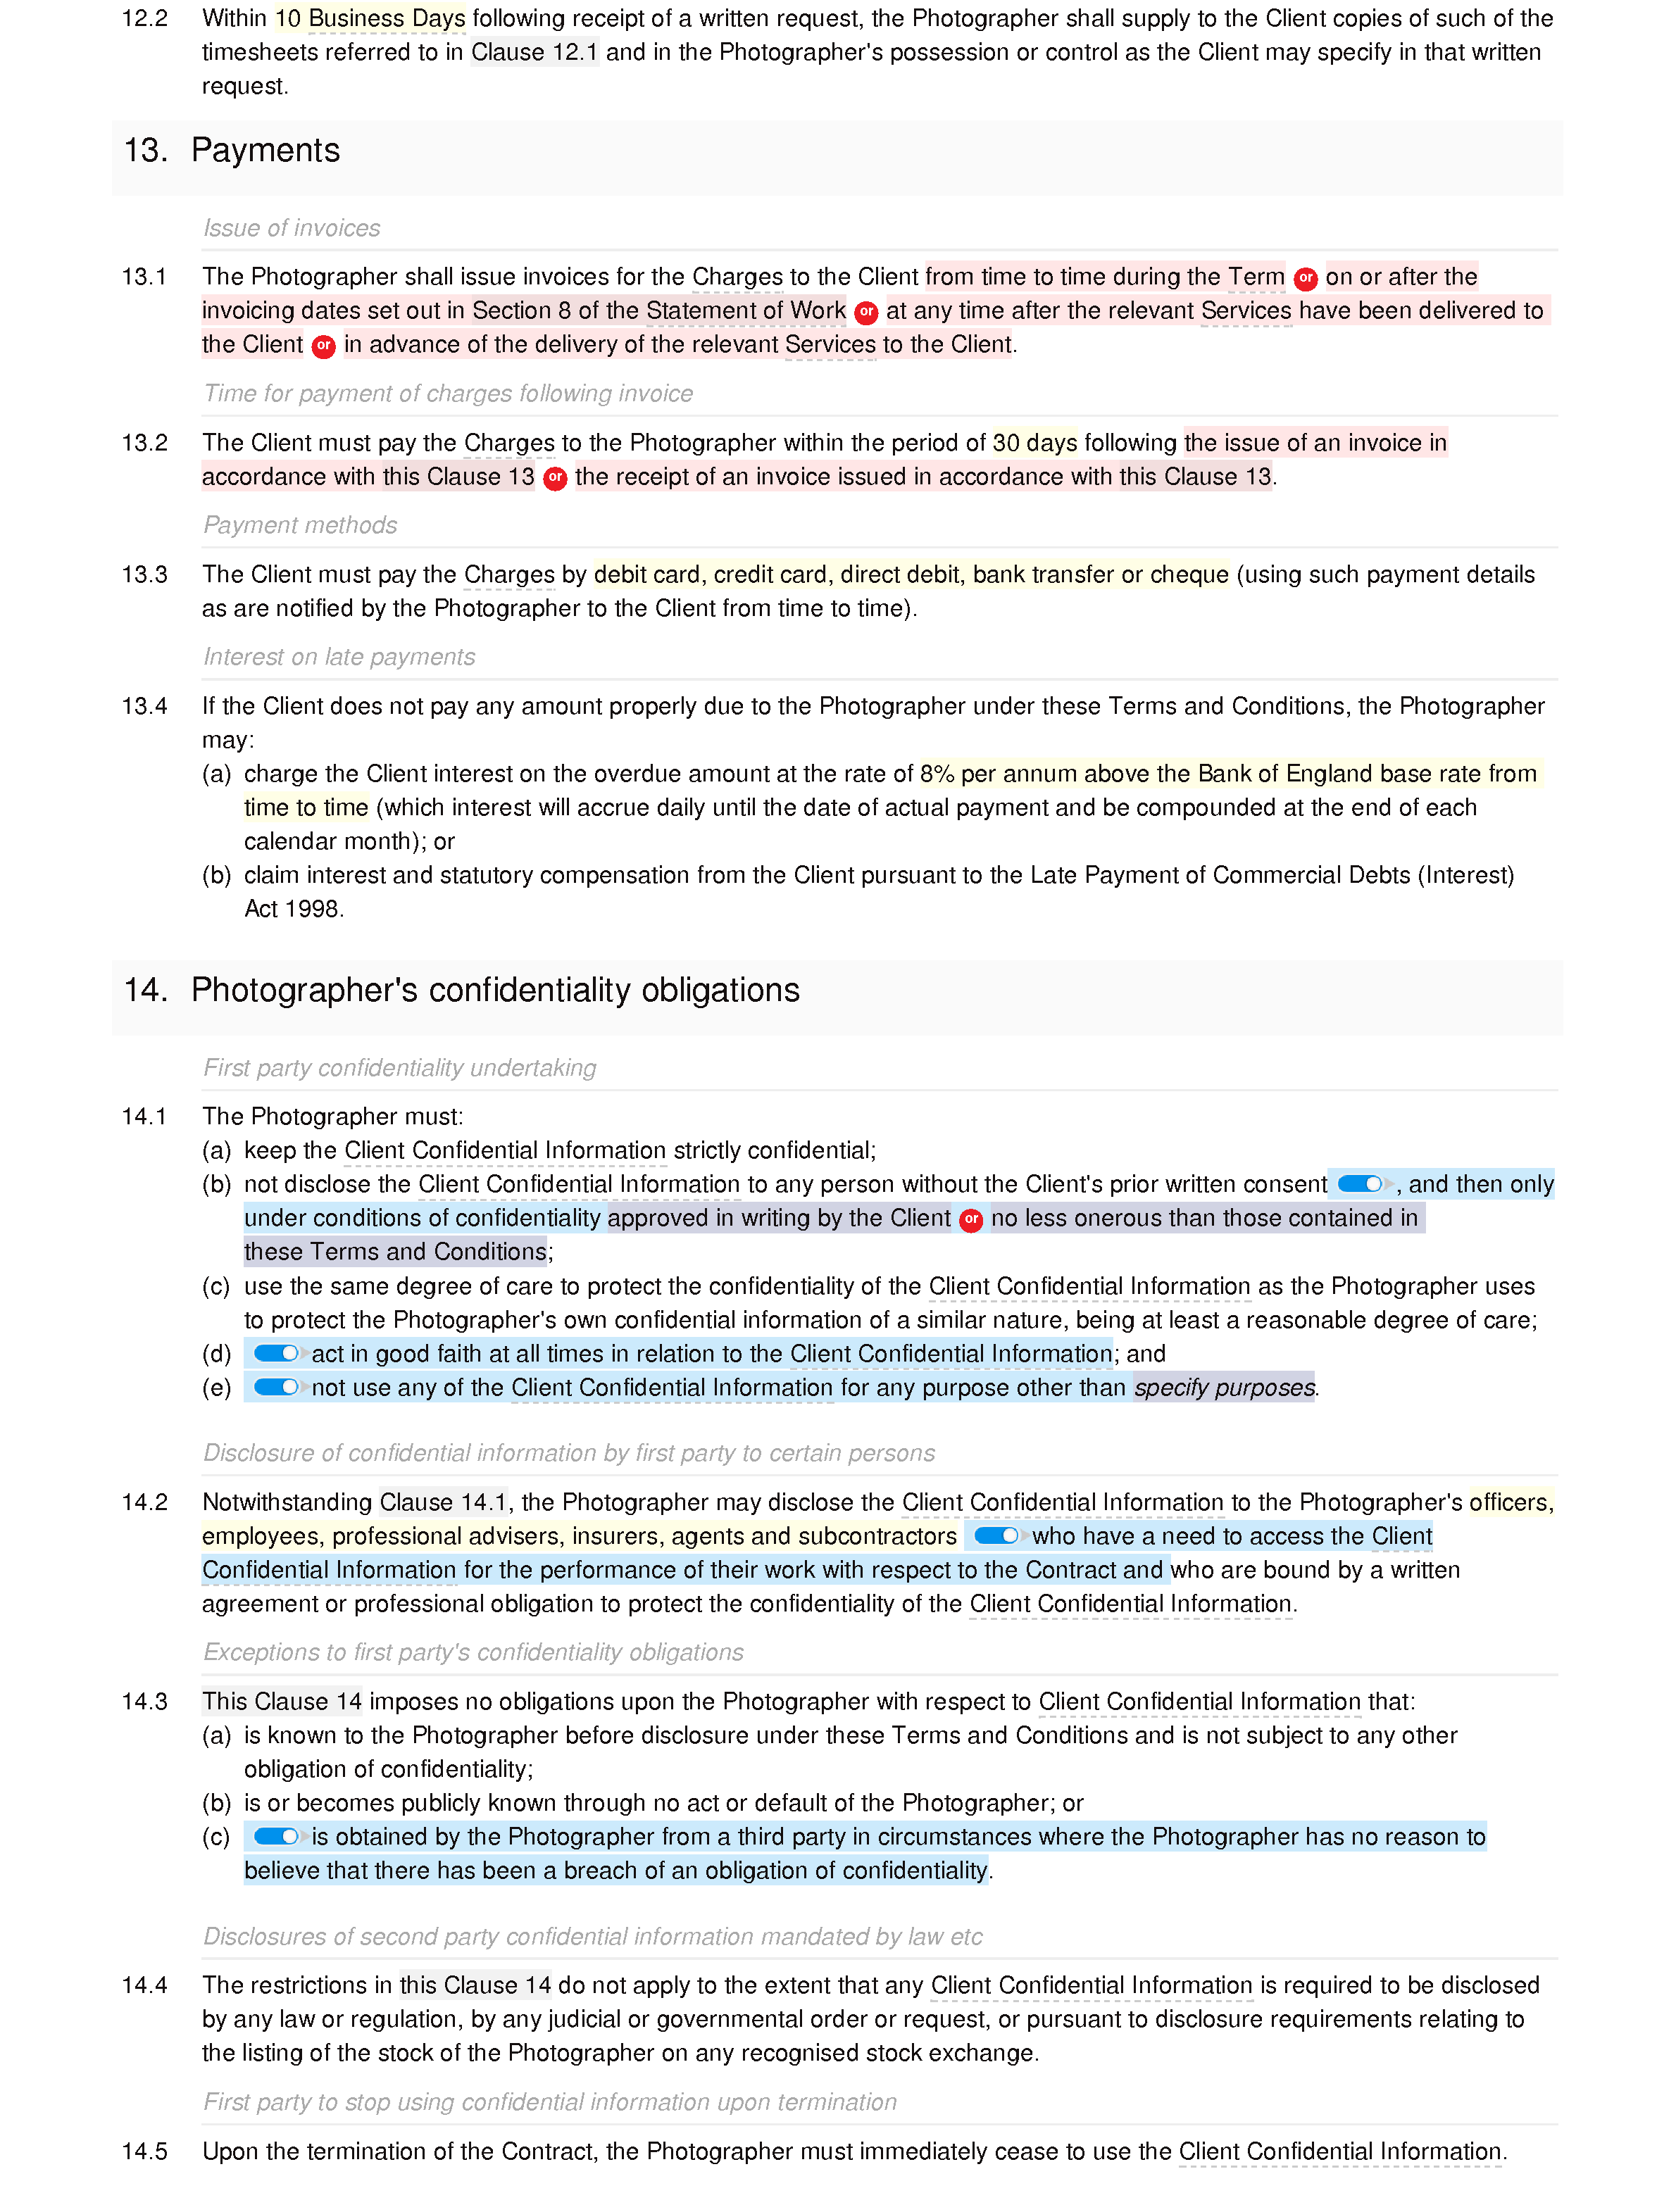 Wedding photography terms and conditions document editor preview